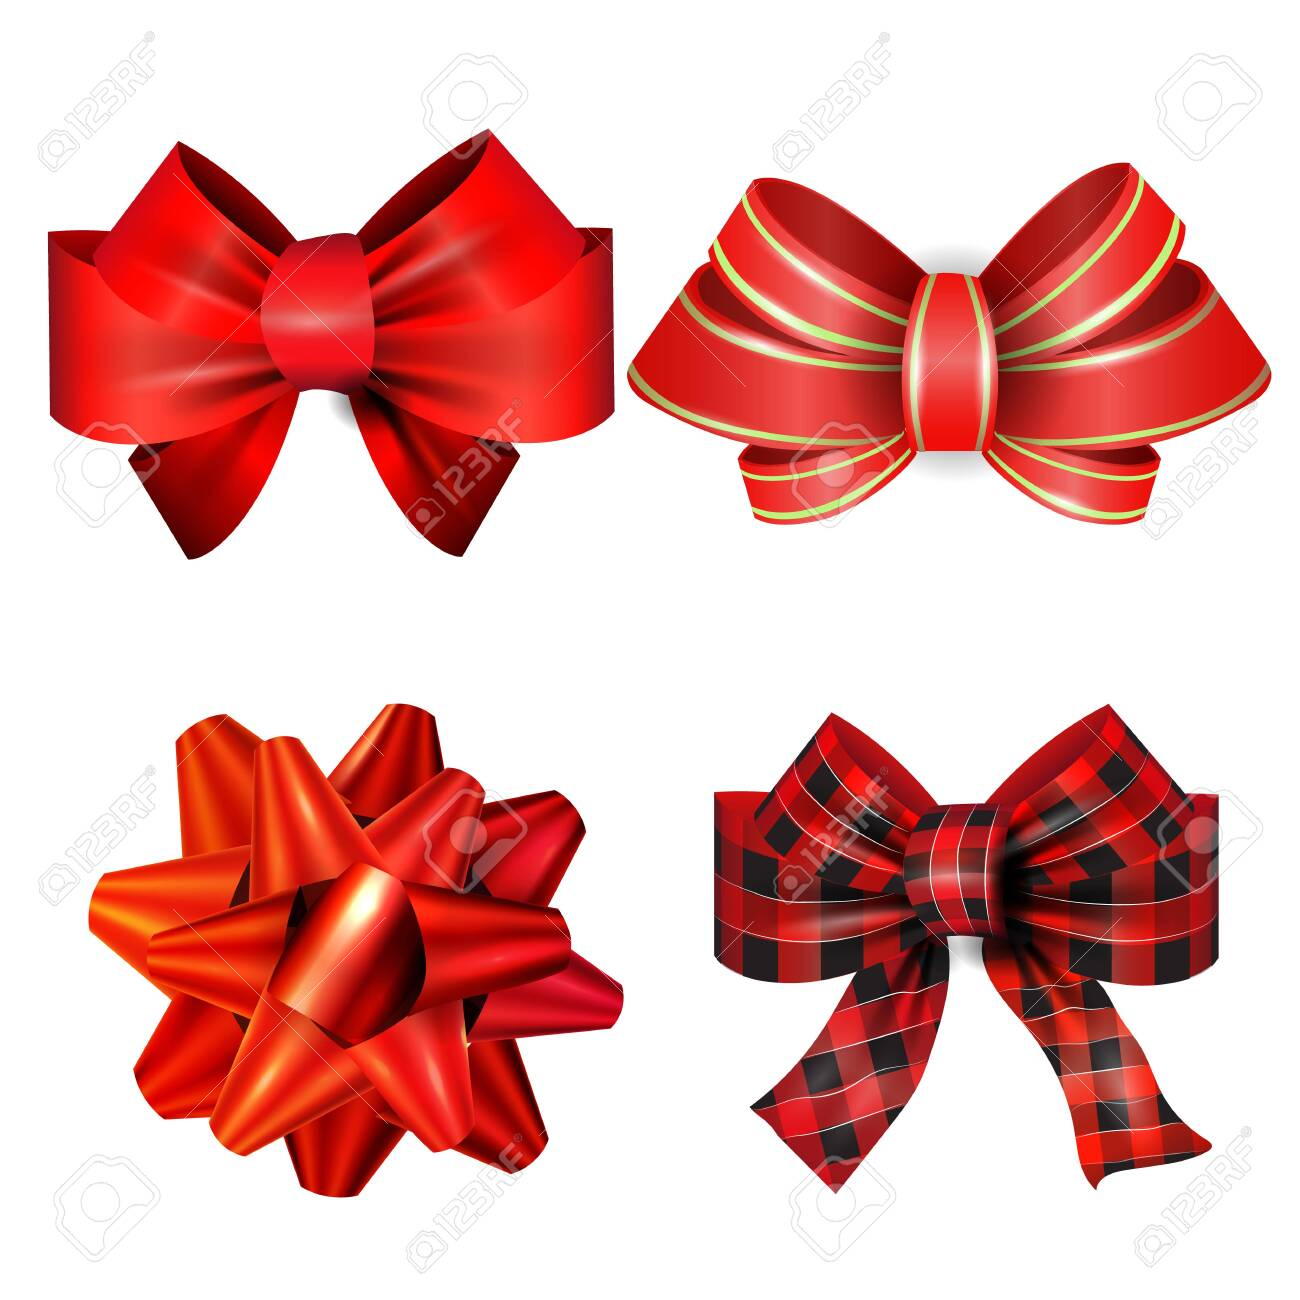 Big set of red gift bows with ribbons. Vector - 133489196